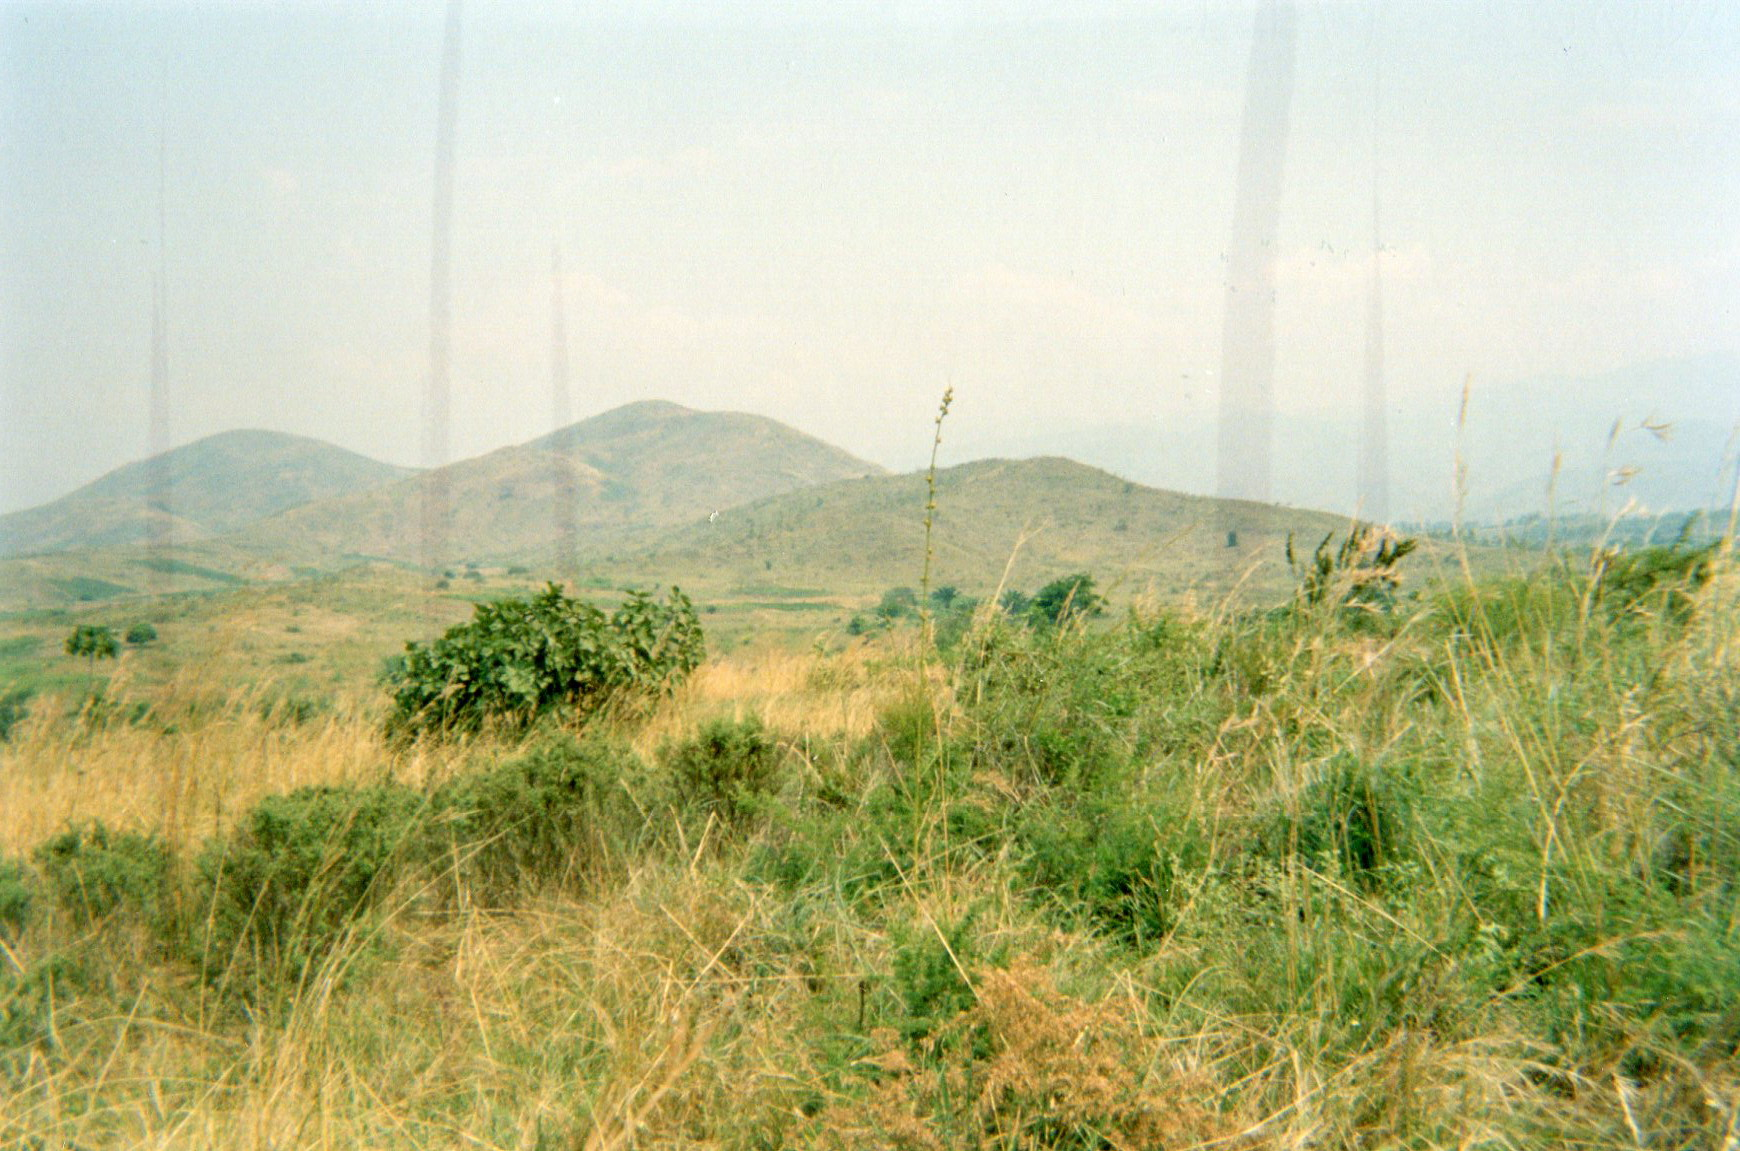 This photo shows the training area where we were trained in the armed groups.